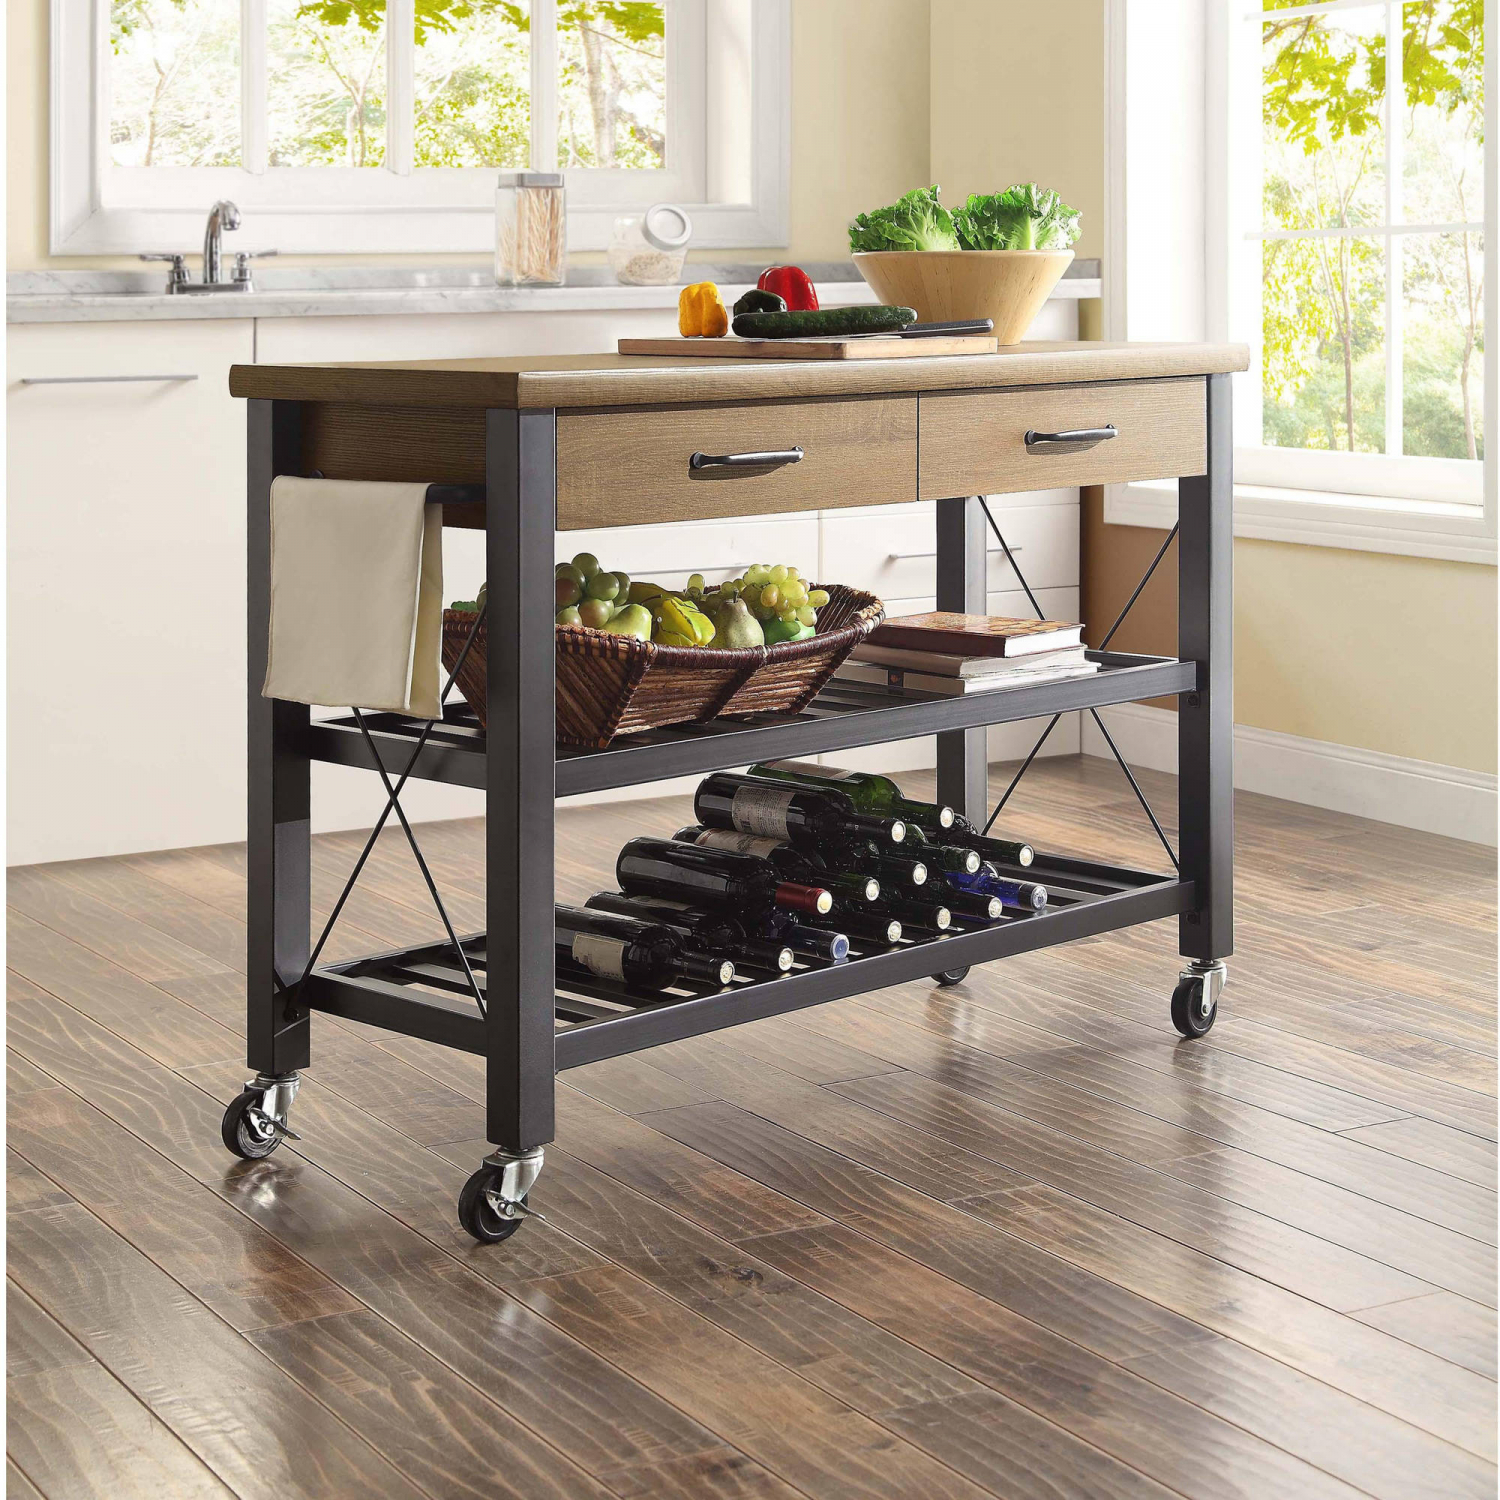 Details About Kitchen Cart Island Table Butcher Block Tv Stand Mobile Storage Wine Rack Decor